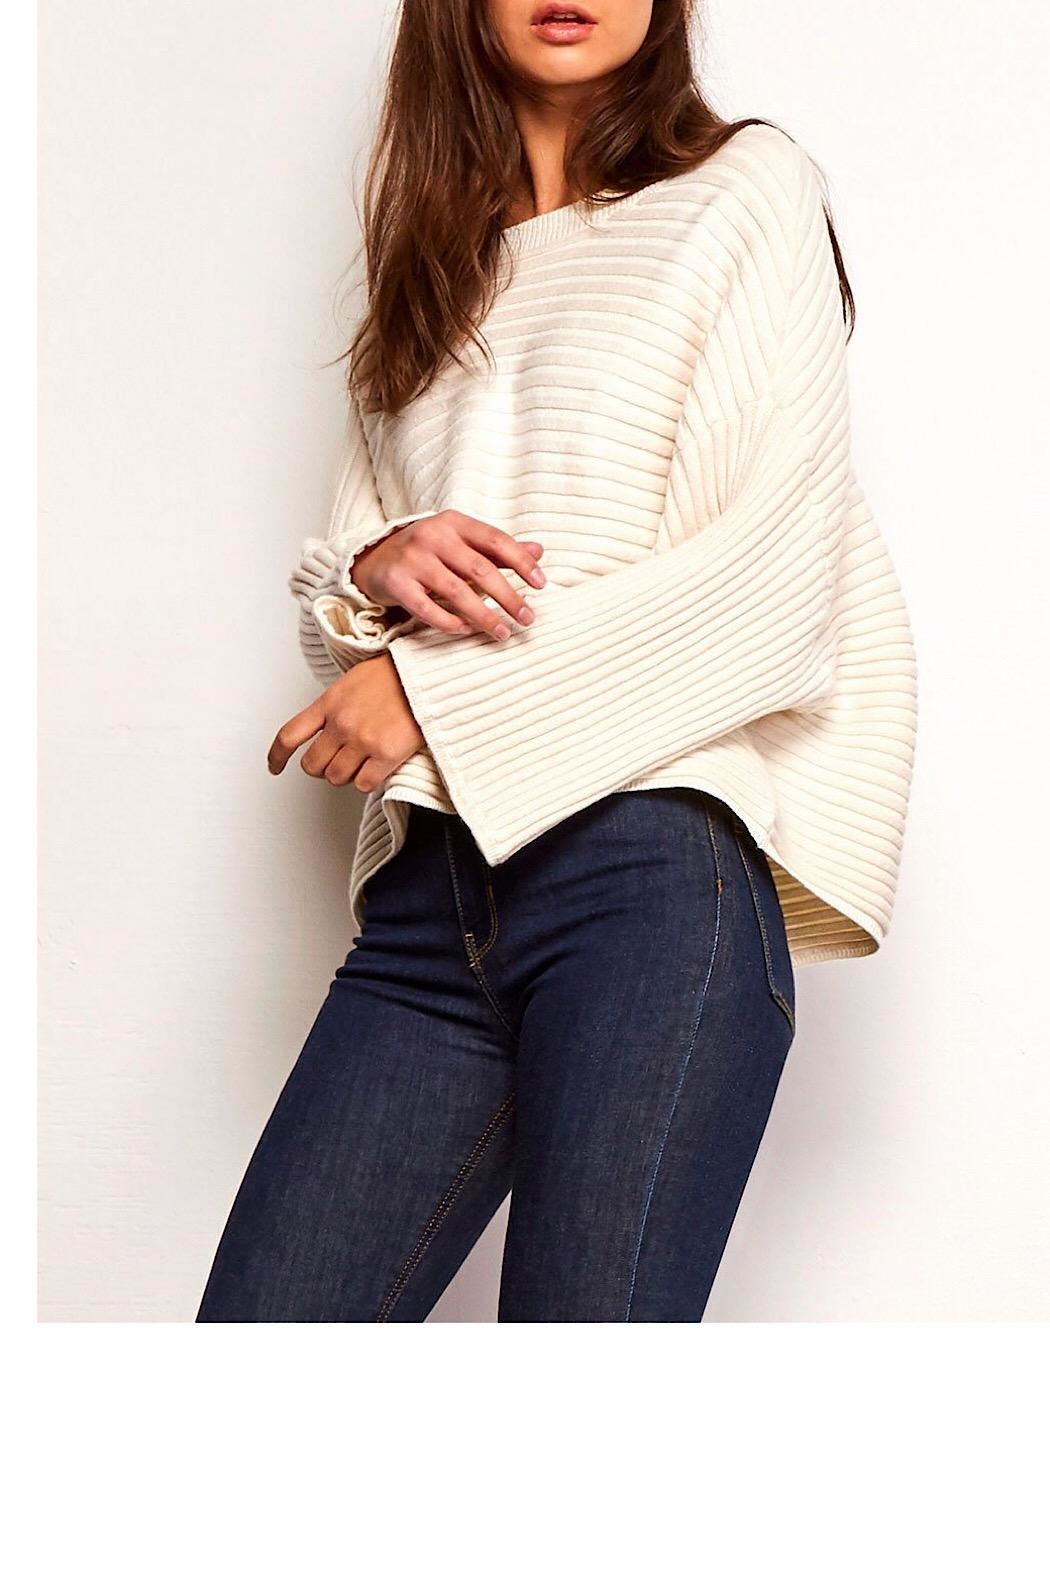 Jack by BB Dakota Claudel Wide-Sleeve Sweater - Front Cropped Image